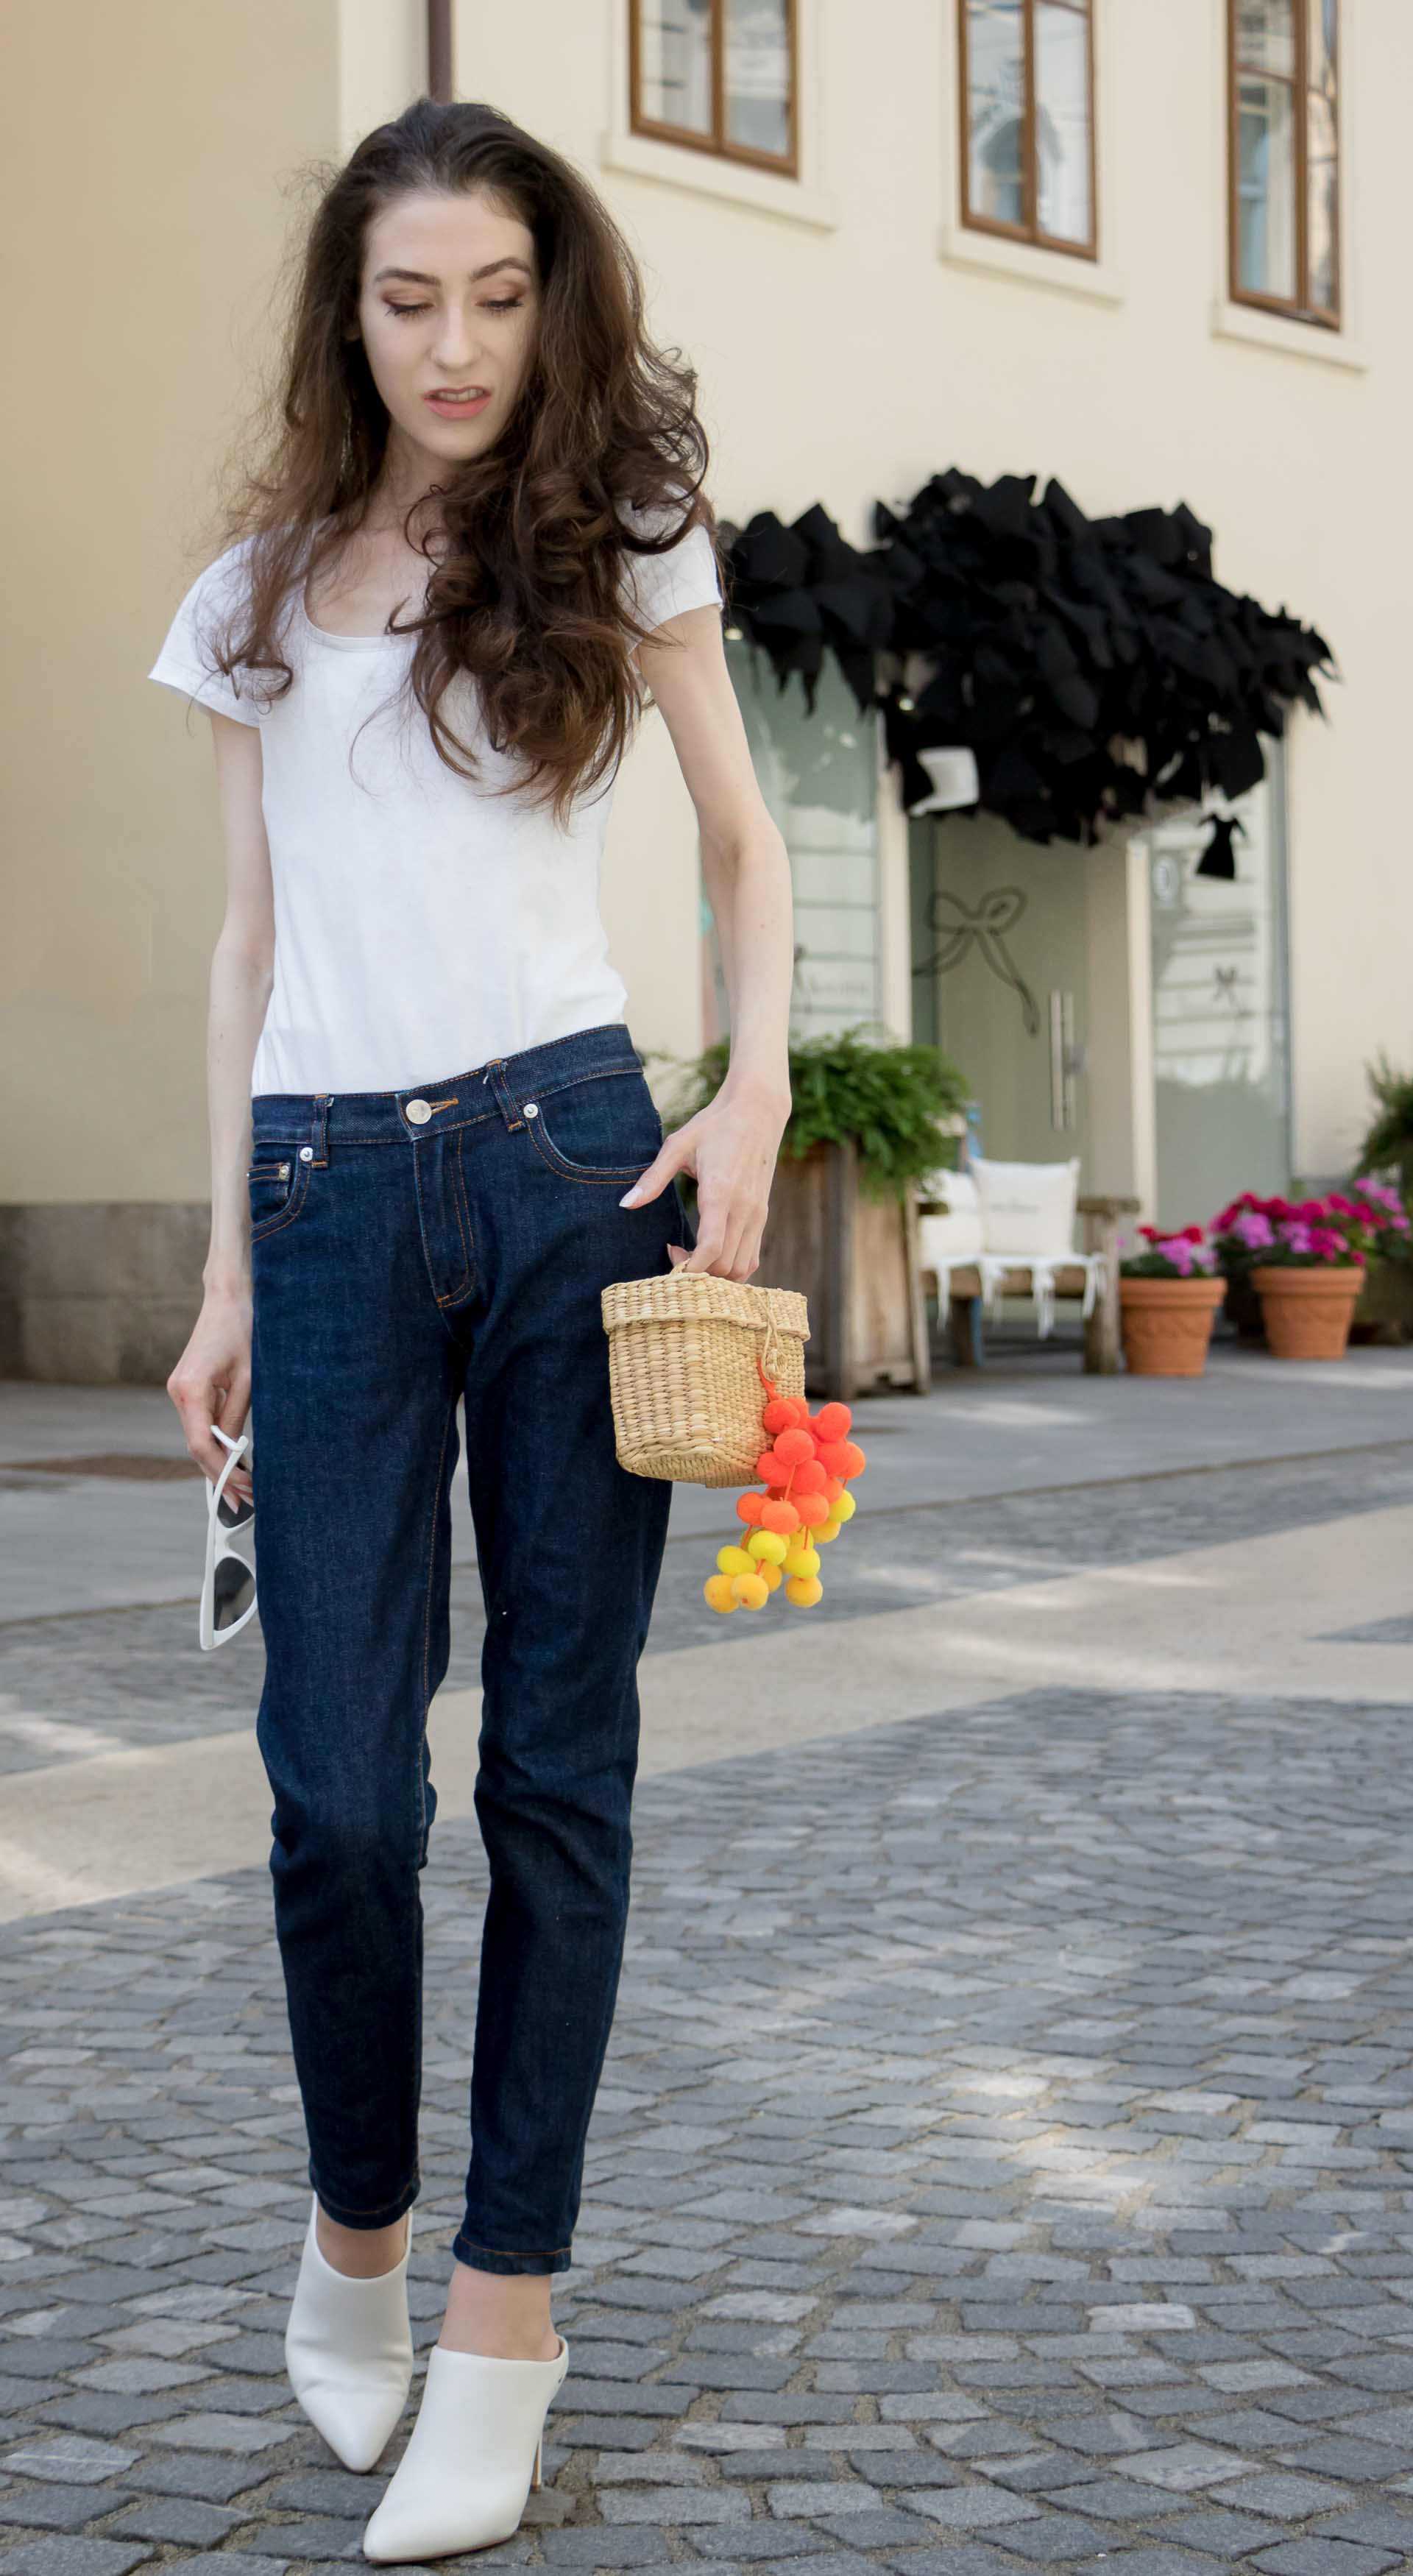 Veronika Lipar Fashion Editor of Brunette from Wall Street dressed in summer basics dark blue tapered jeans from A.P.C., H&M white T-shirt, Nannacay basket bag, white mules and Adam Selman x Le Specs white cat eye Lolita sunglasses on the street